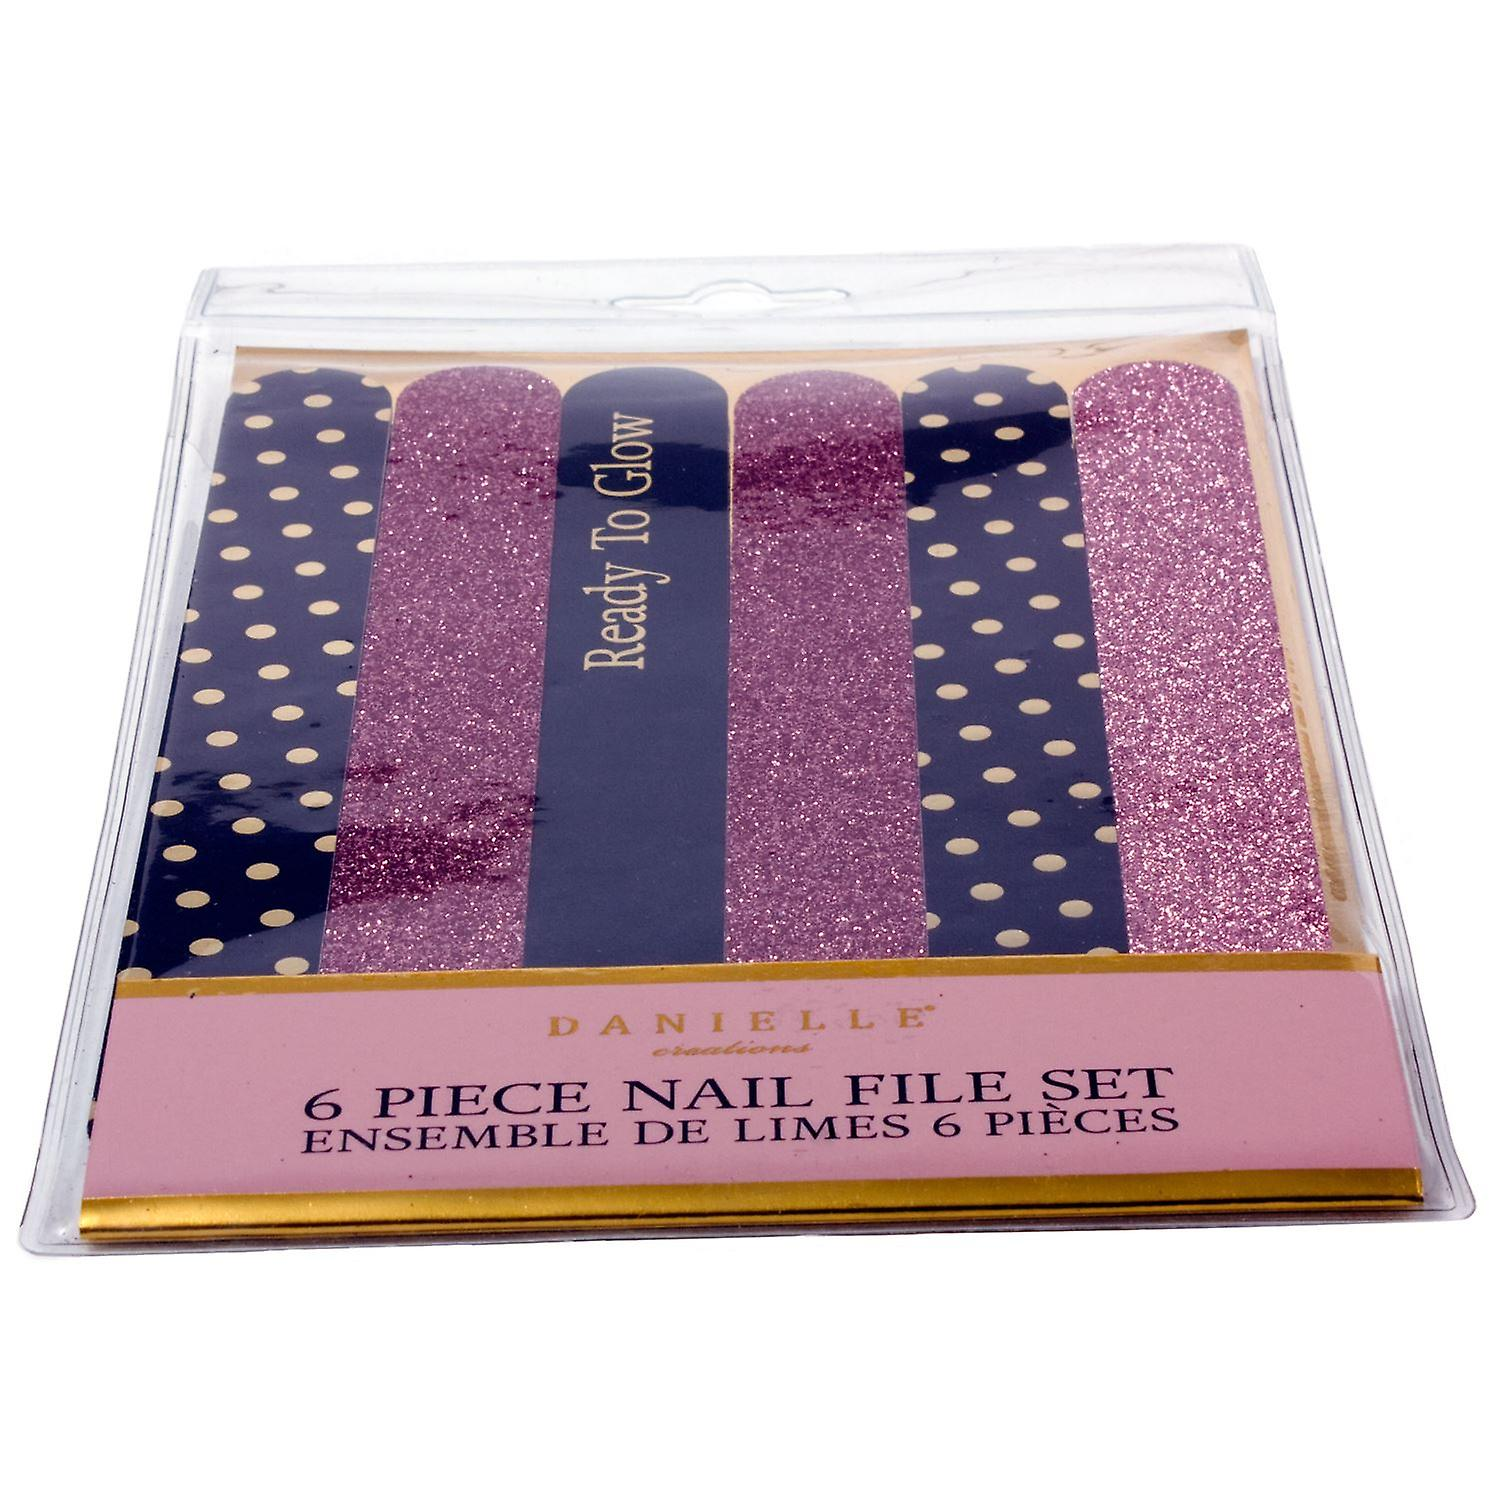 Danielle Creations 6 Piece Nail File Set - Ready to Glow